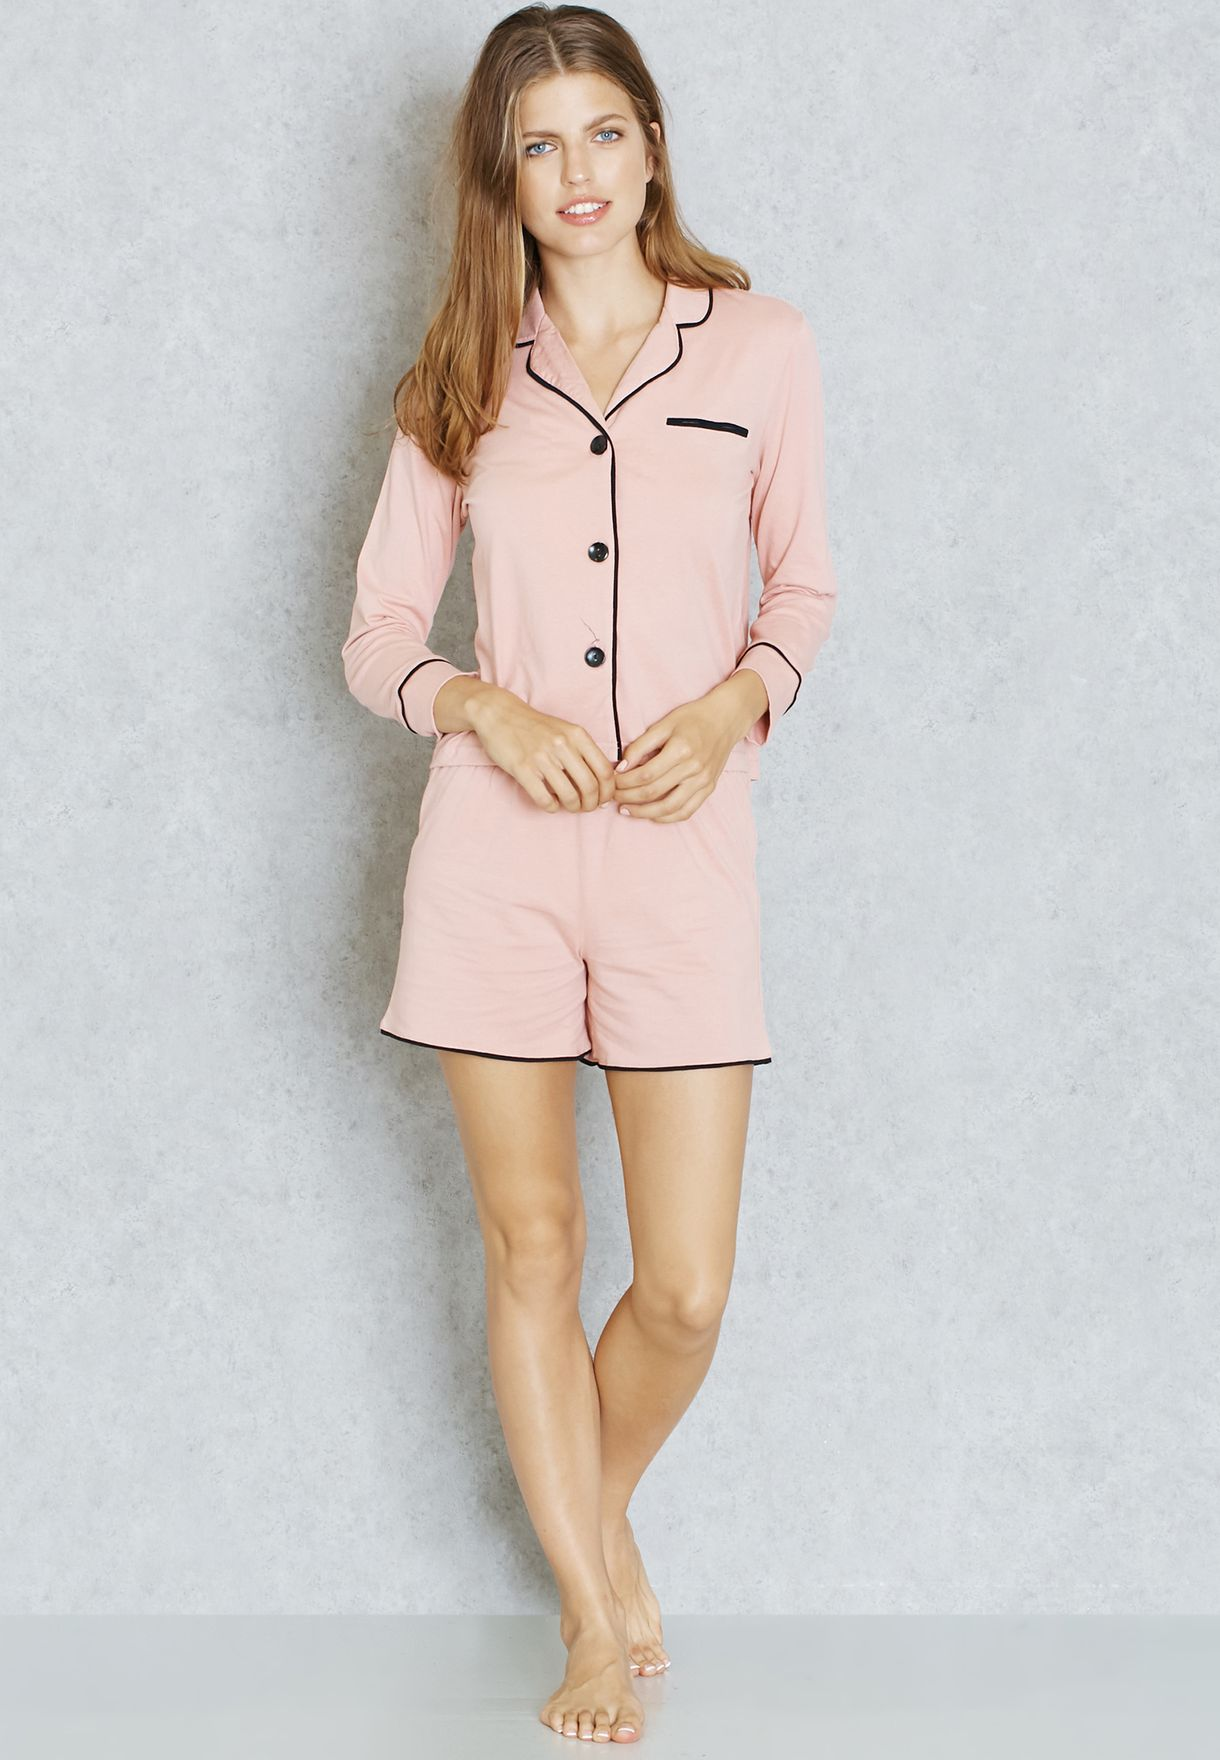 94ea66e410a9 Shop Lounge District pink Contrast Piping Shirt Shorts Pyjama Set ...